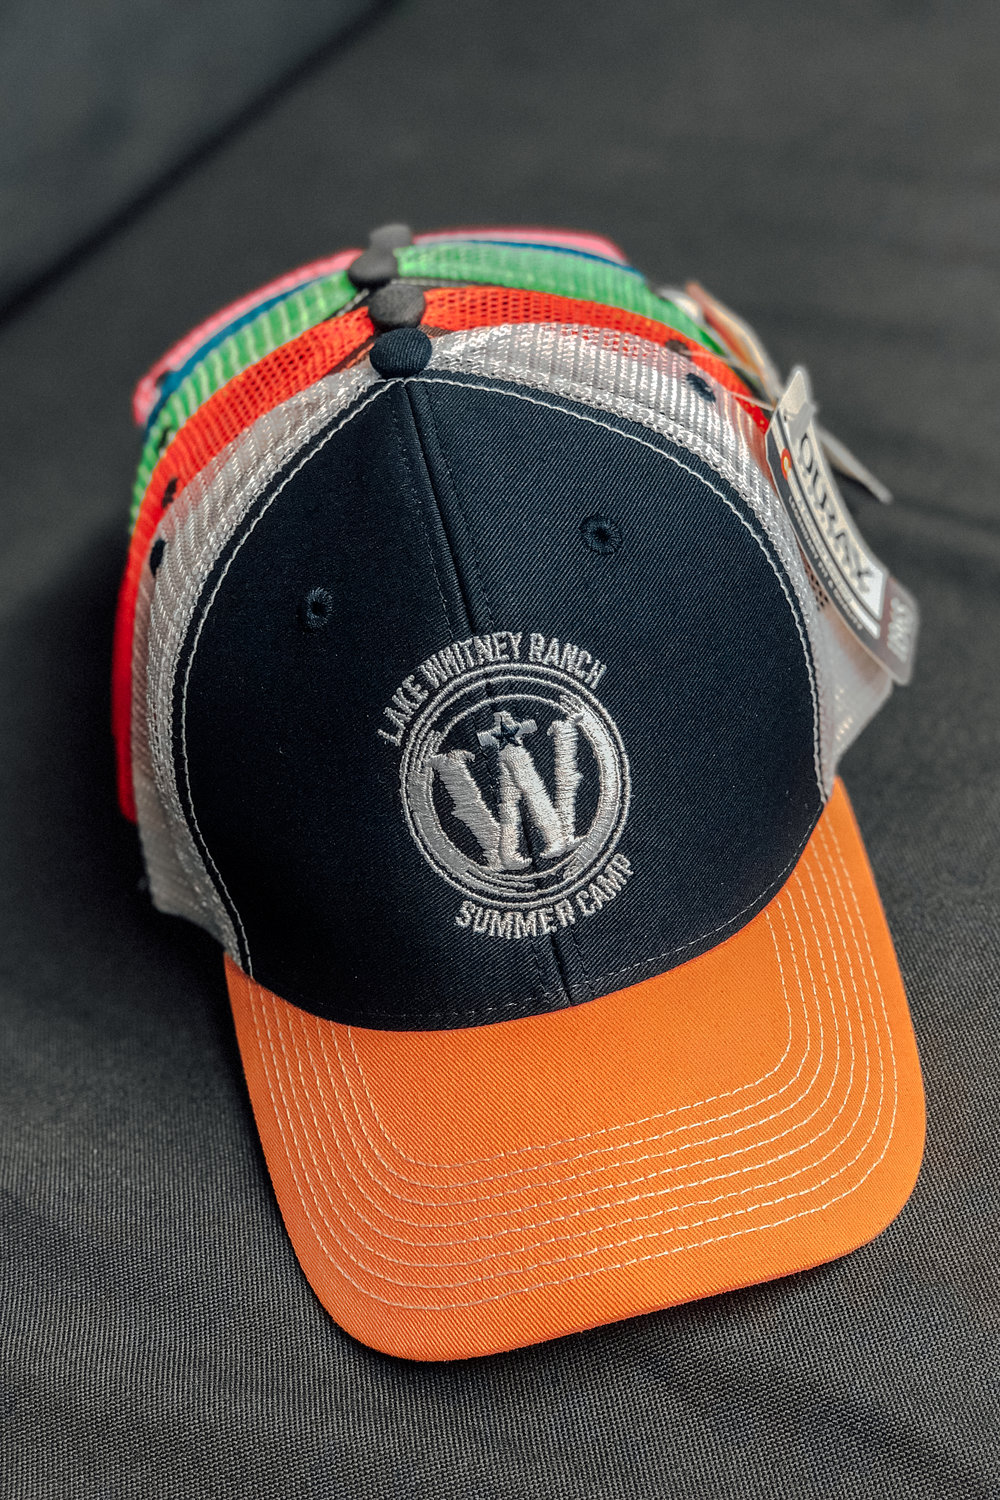 LAKE WHITNEY -  SUMMER CAMP HAT    $15.00